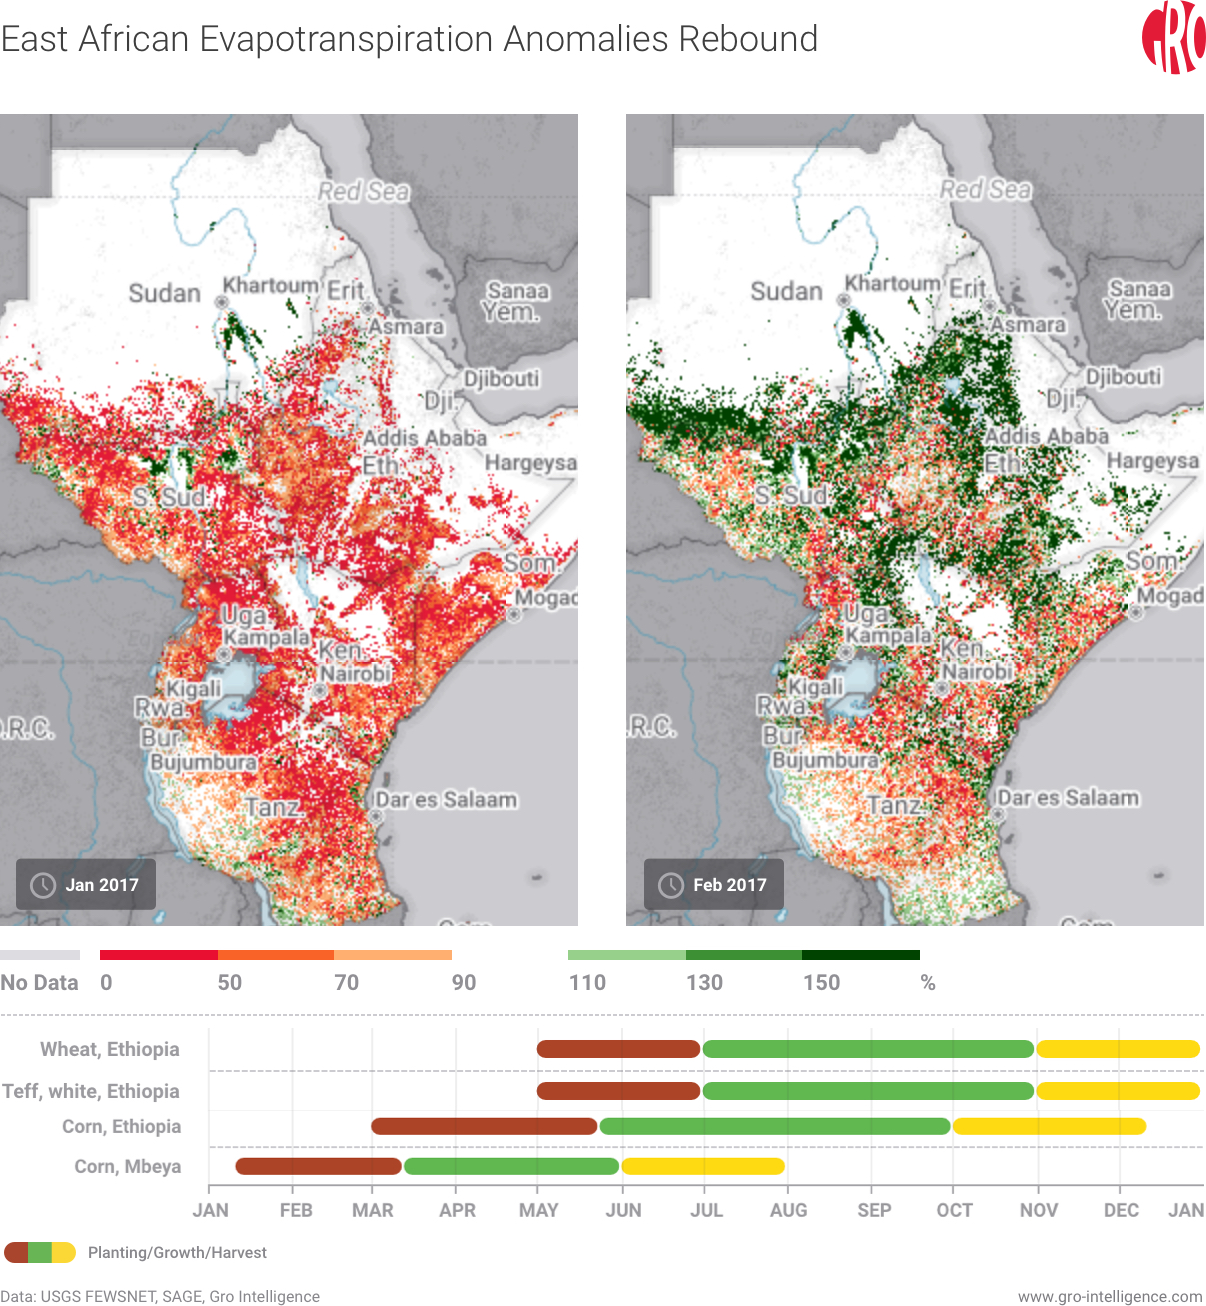 East African Evapotranspiration Anomalies Rebound